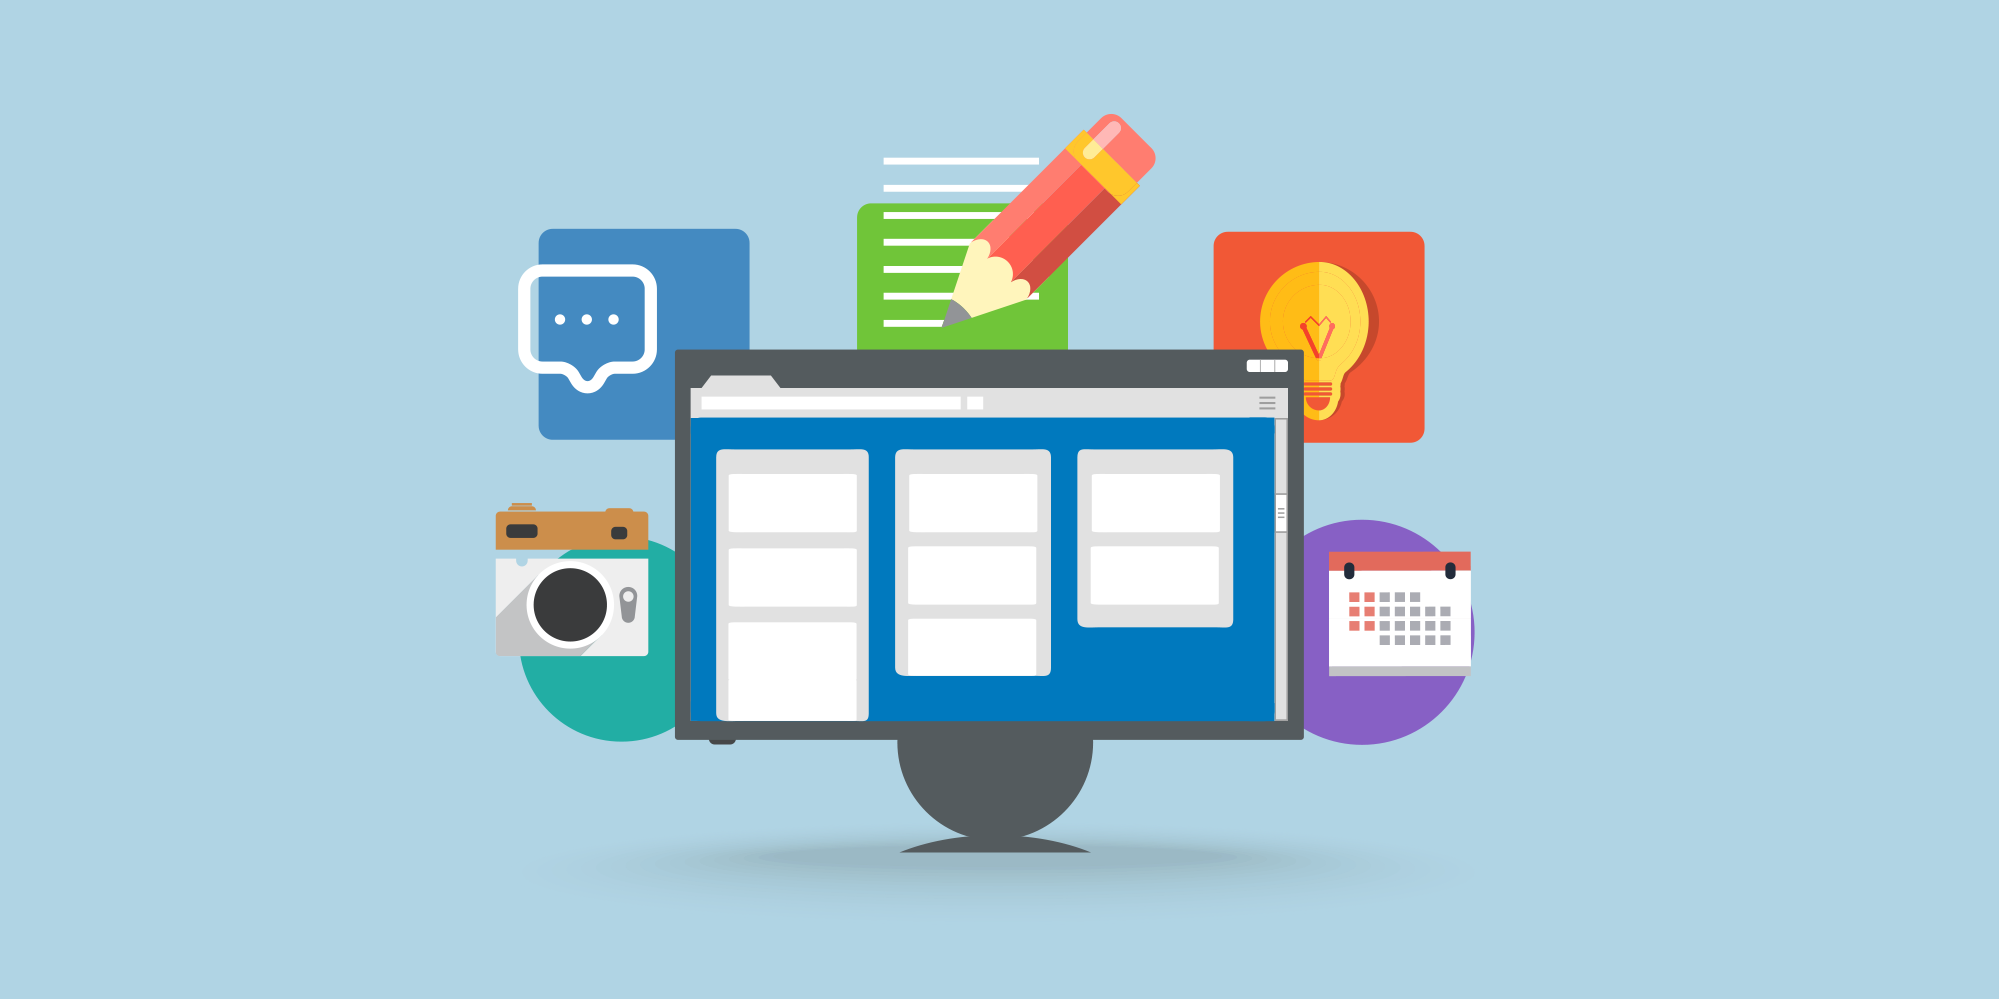 trello_editorial_calendar_3.png